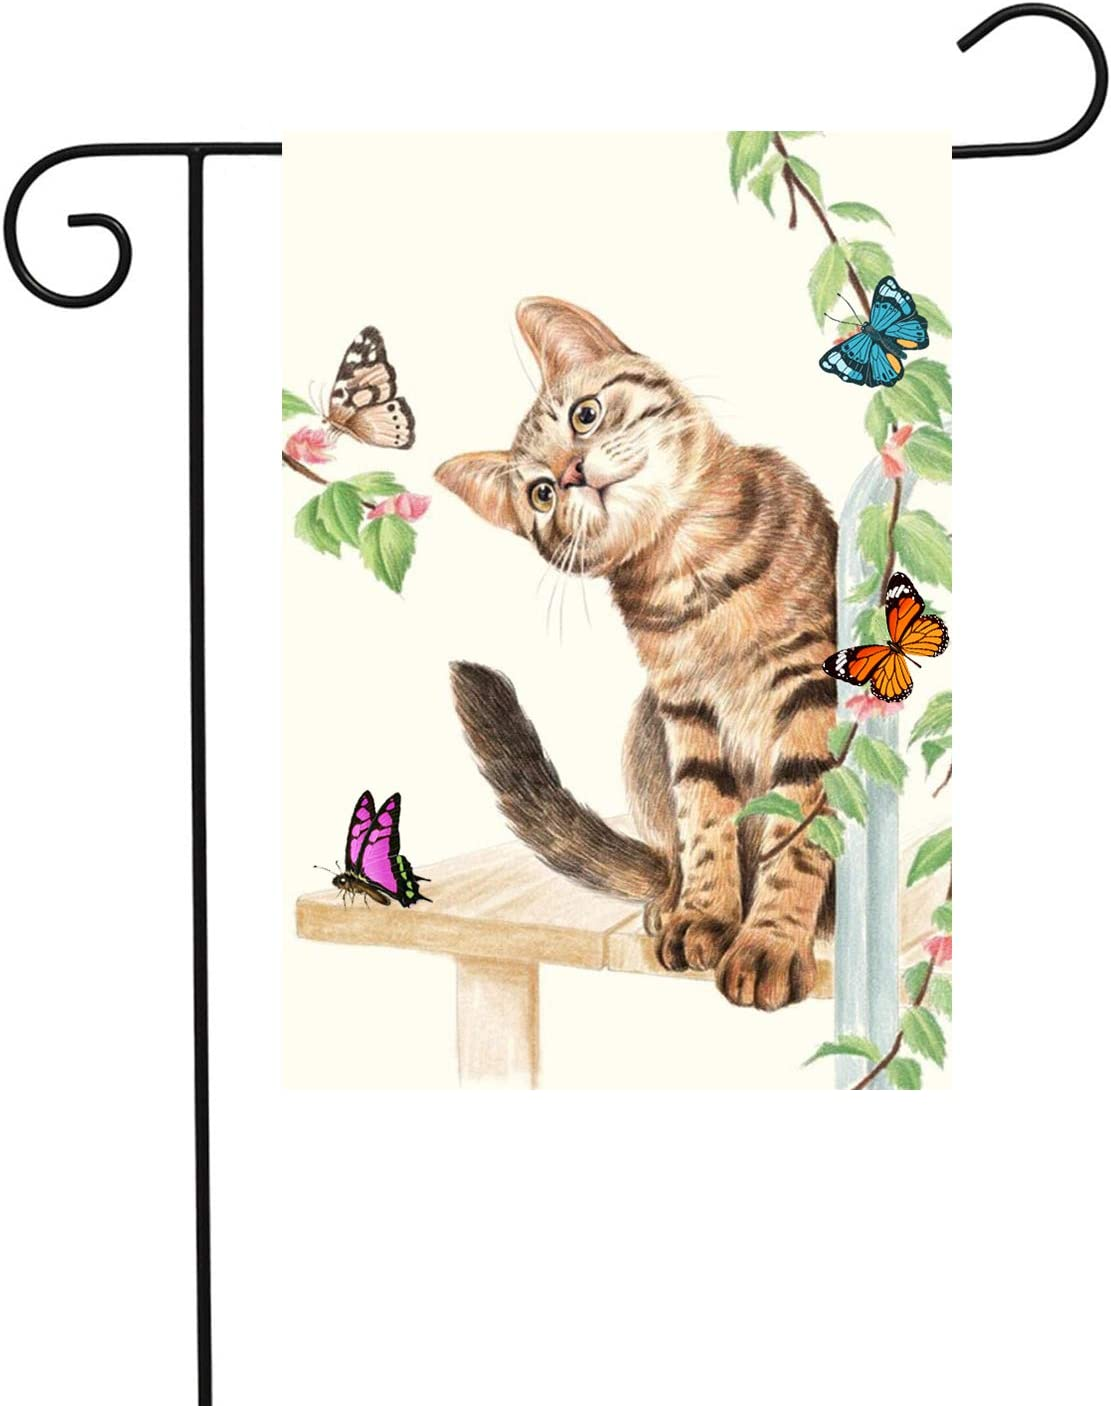 PANHUI Home Garden Flag Welcome Cute Cat & Butterfly for Spring Summer,House Decorative Seasonal Outdoor Yard Lawn Double Sided Flag 12 x 18 Inch